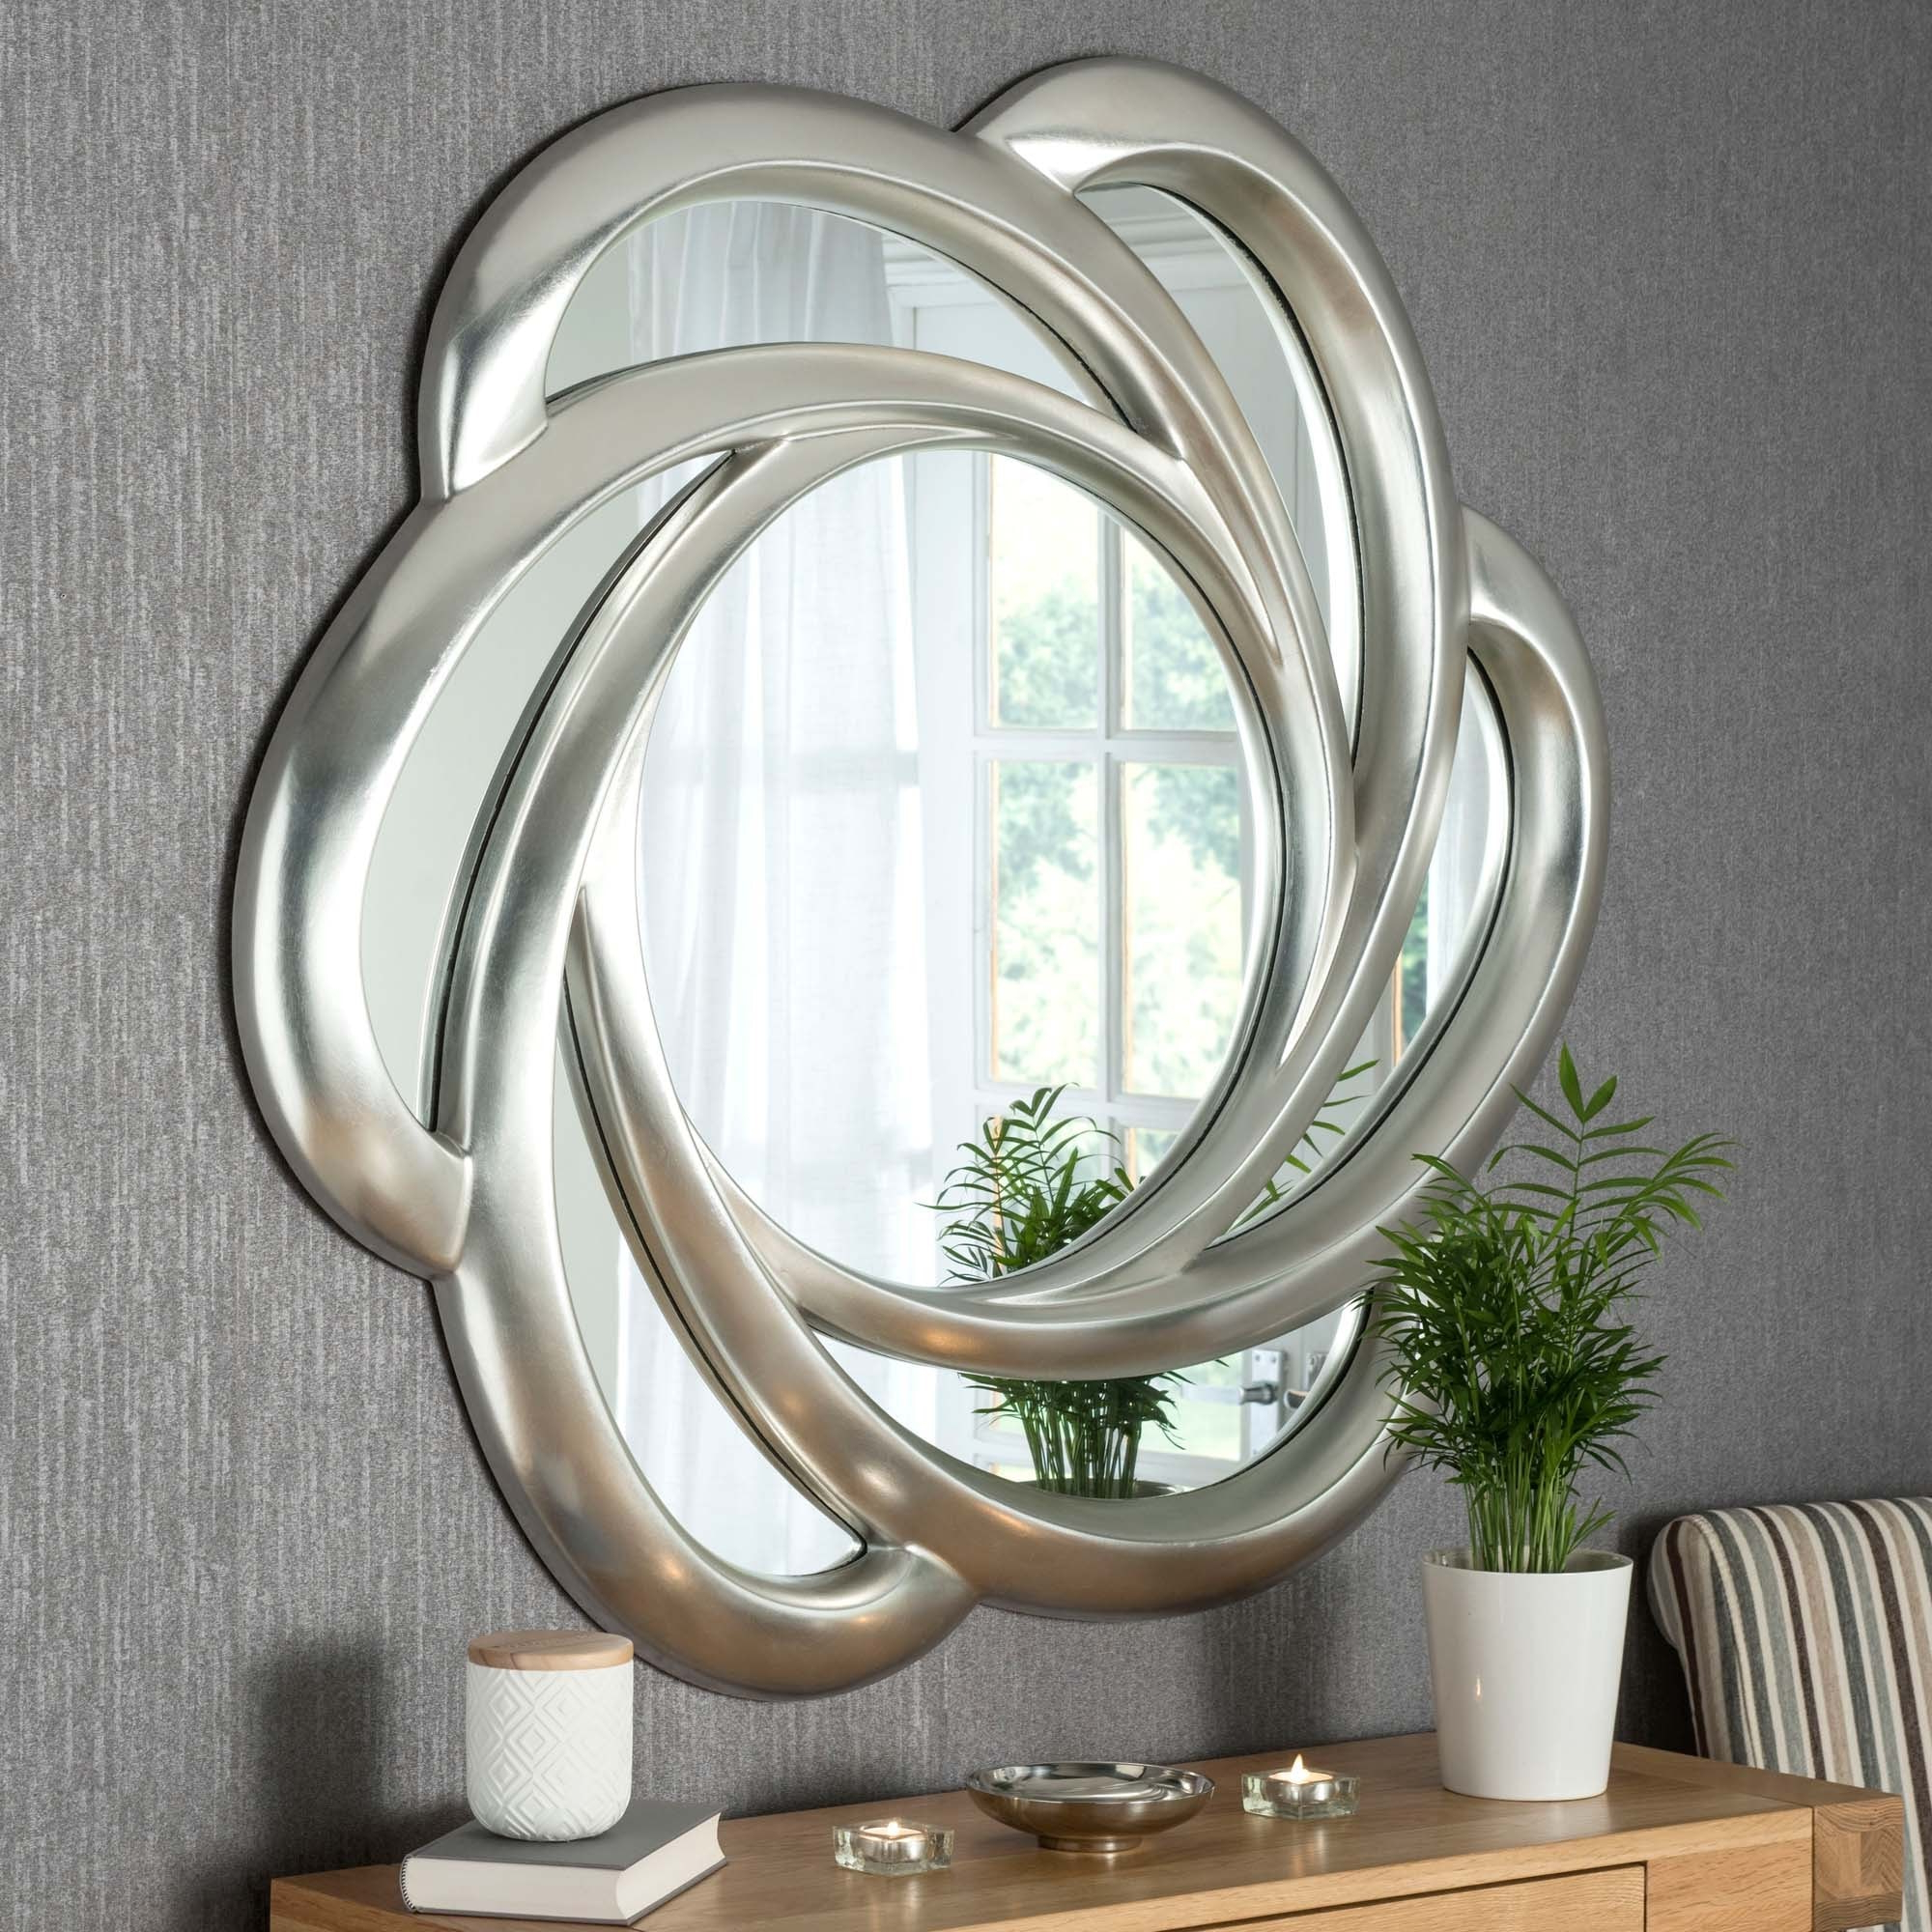 Swirl Wall Mirrors Inside Well Known Contemporary Silver Swirl Wall Mirror (Gallery 3 of 20)